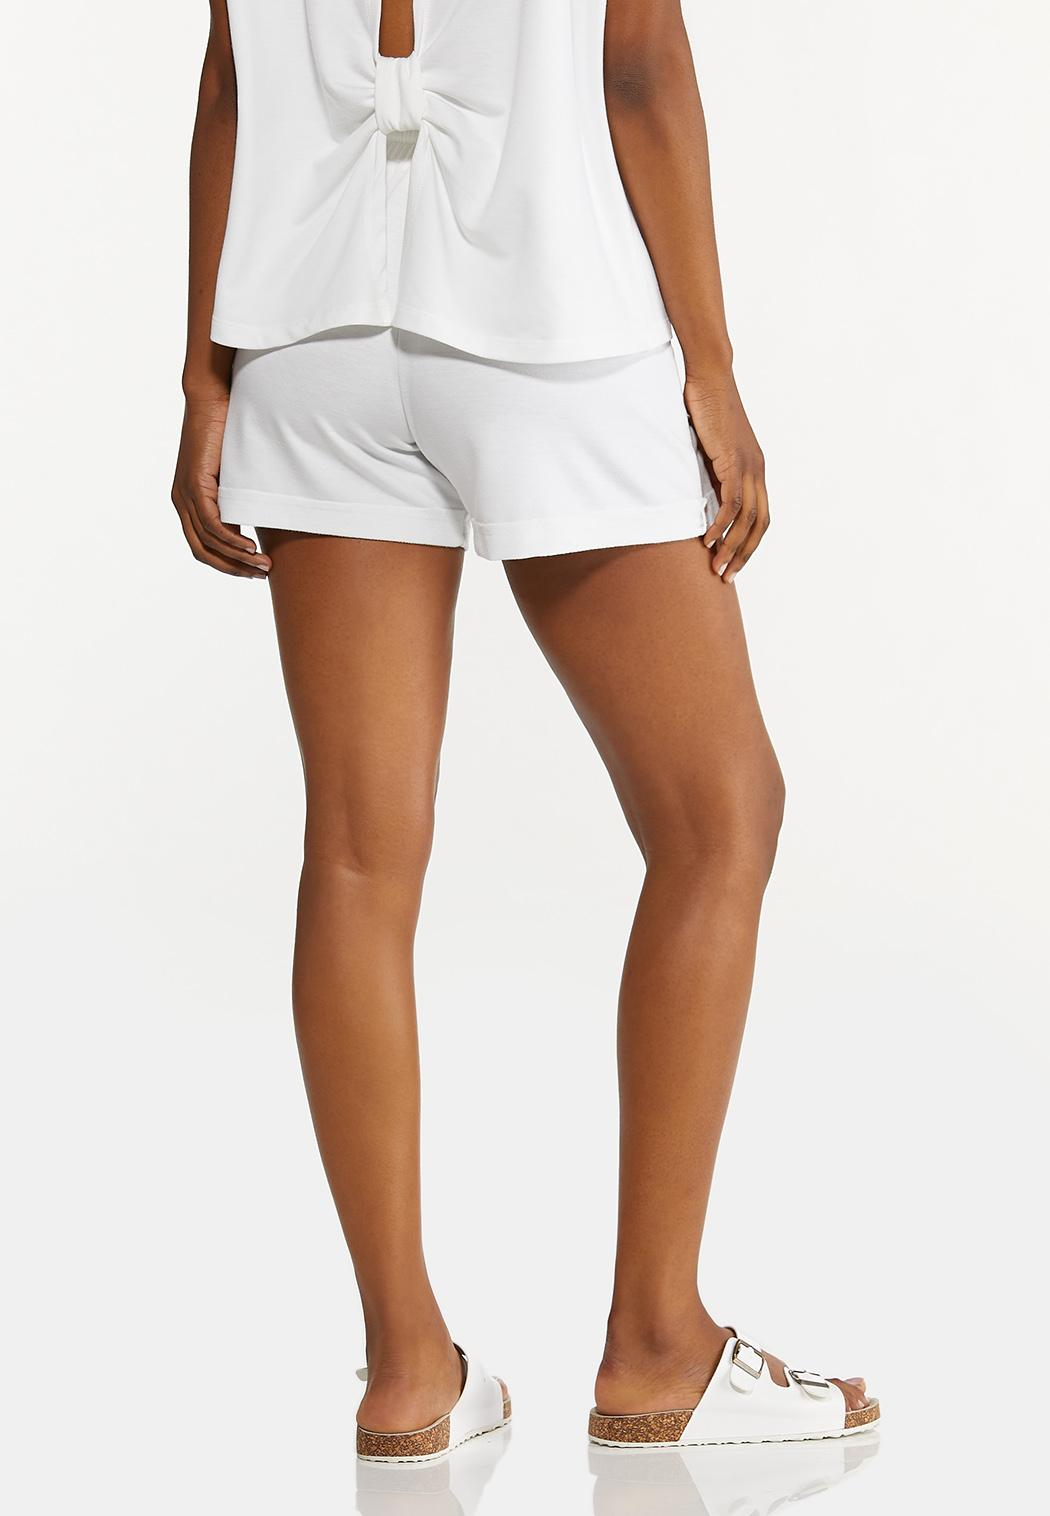 French Terry Shorts (Item #44627103)